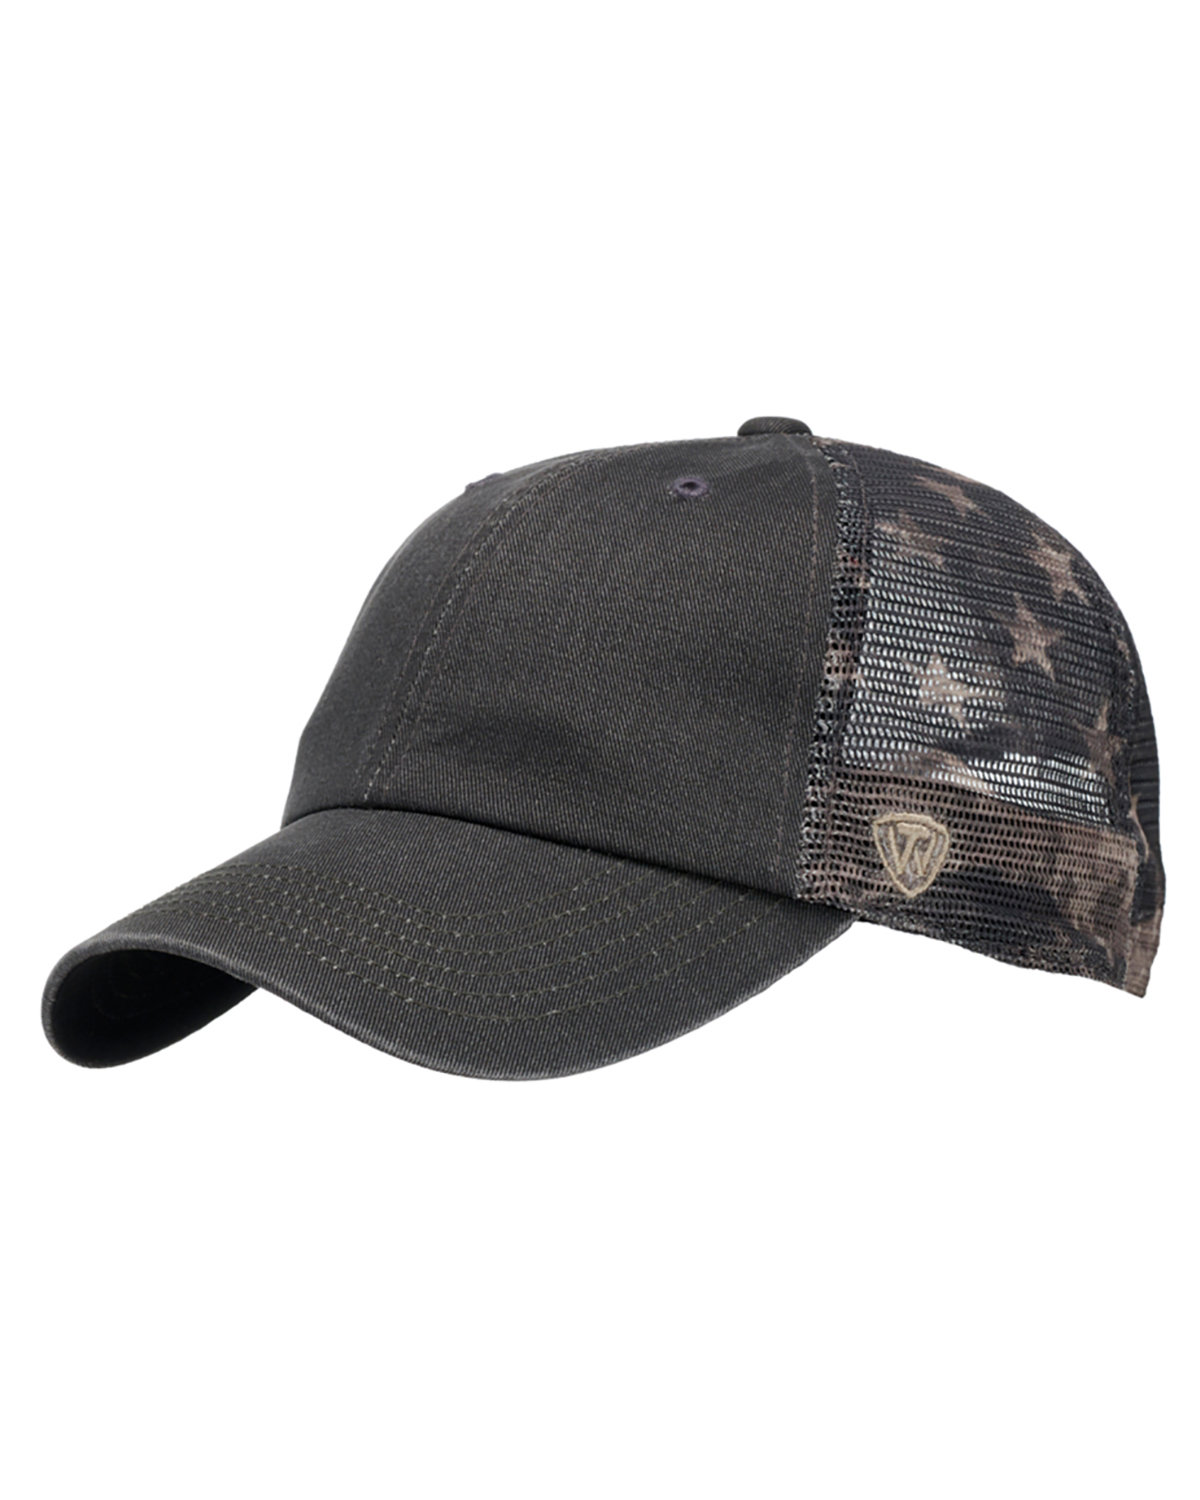 Top Of The World Adult Offroad Cap BLK FLAGTACULAR